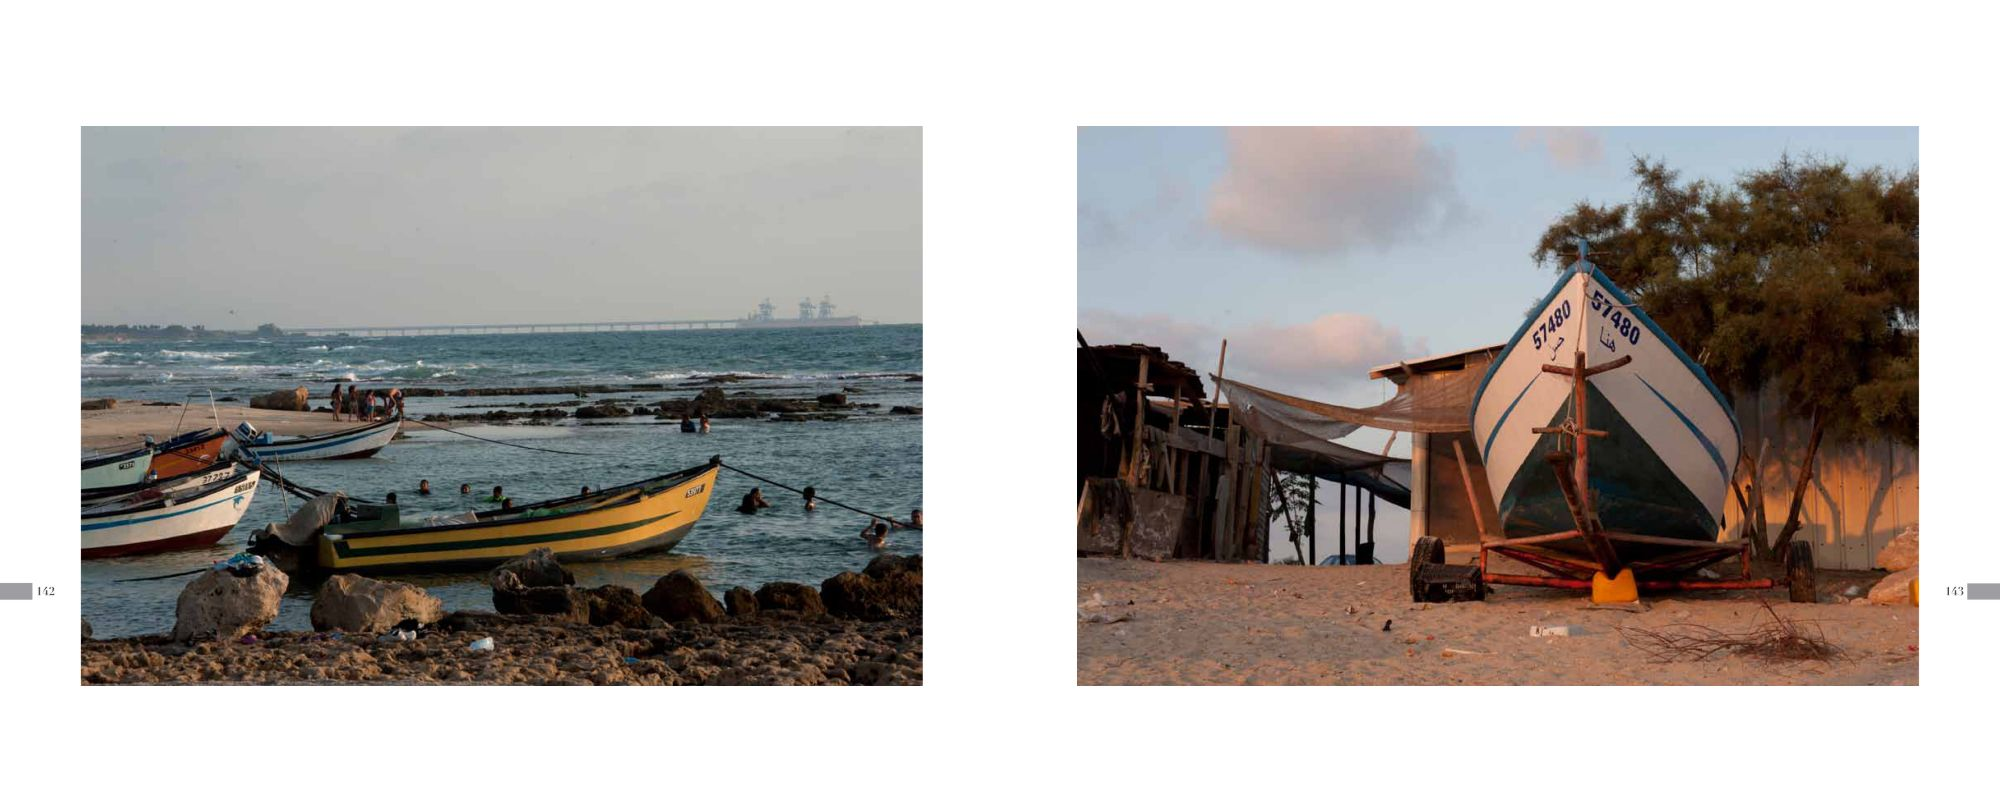 Page 142: Jisser a-Zarka - Fishing boats in the Sea / Page 143: Jisser a-Zarka - Fishing boat on Land